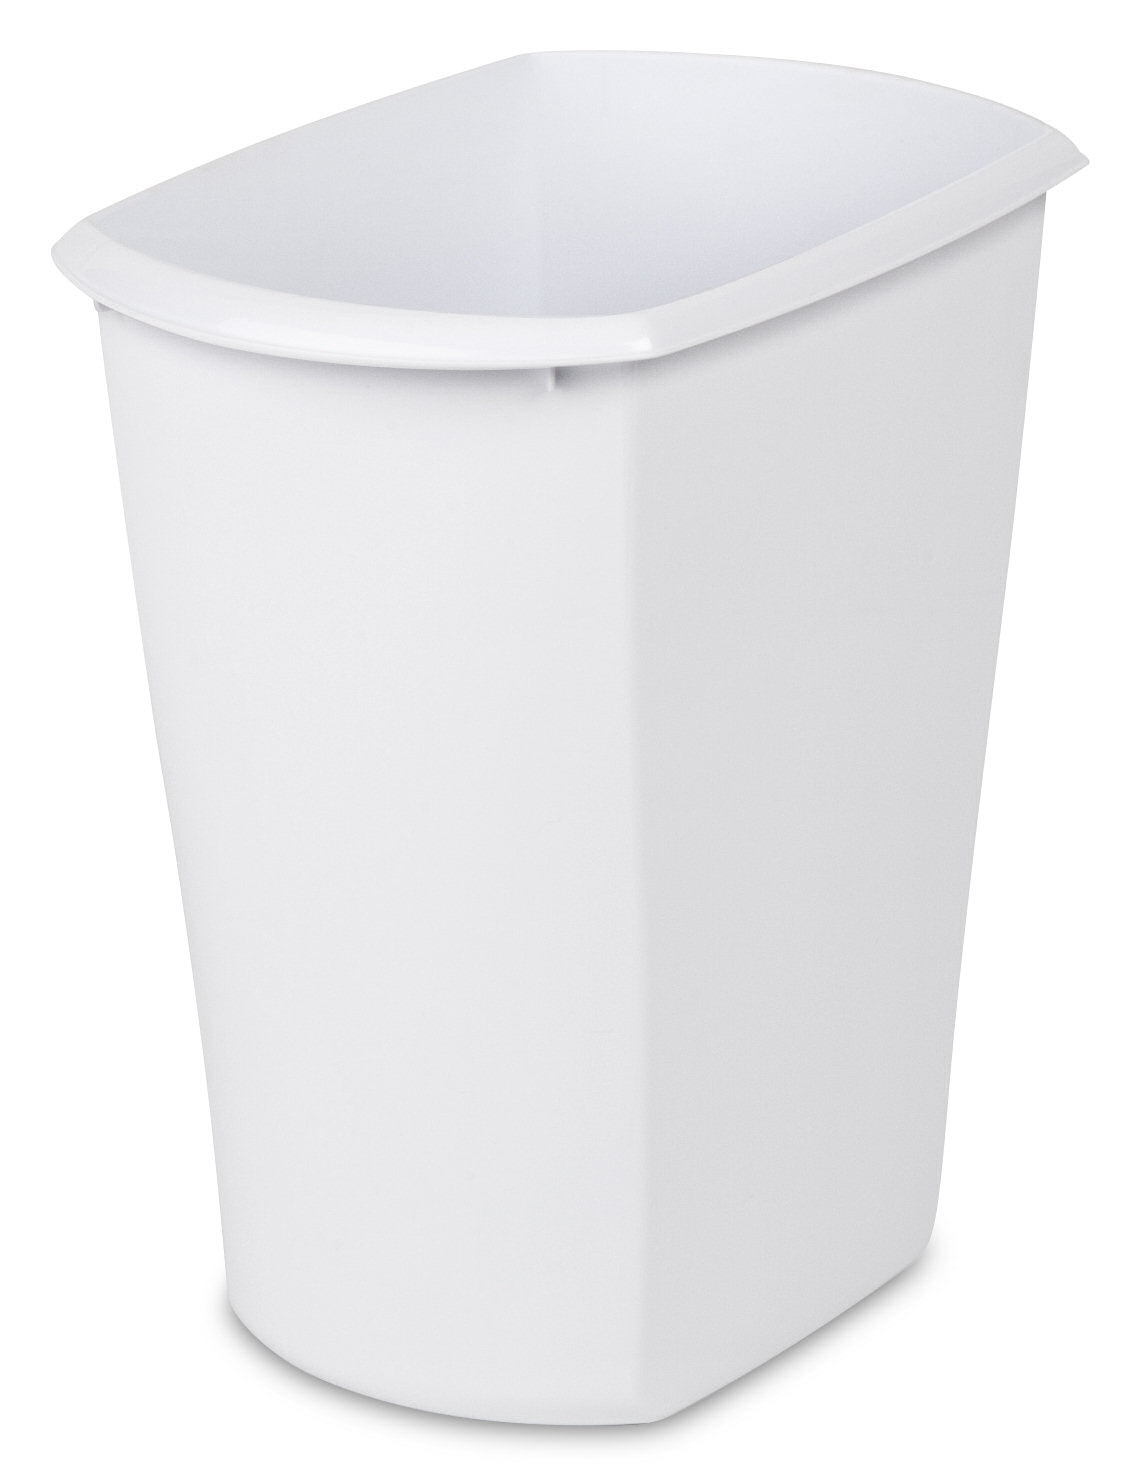 10 Gallon Sterilite Wastebasket